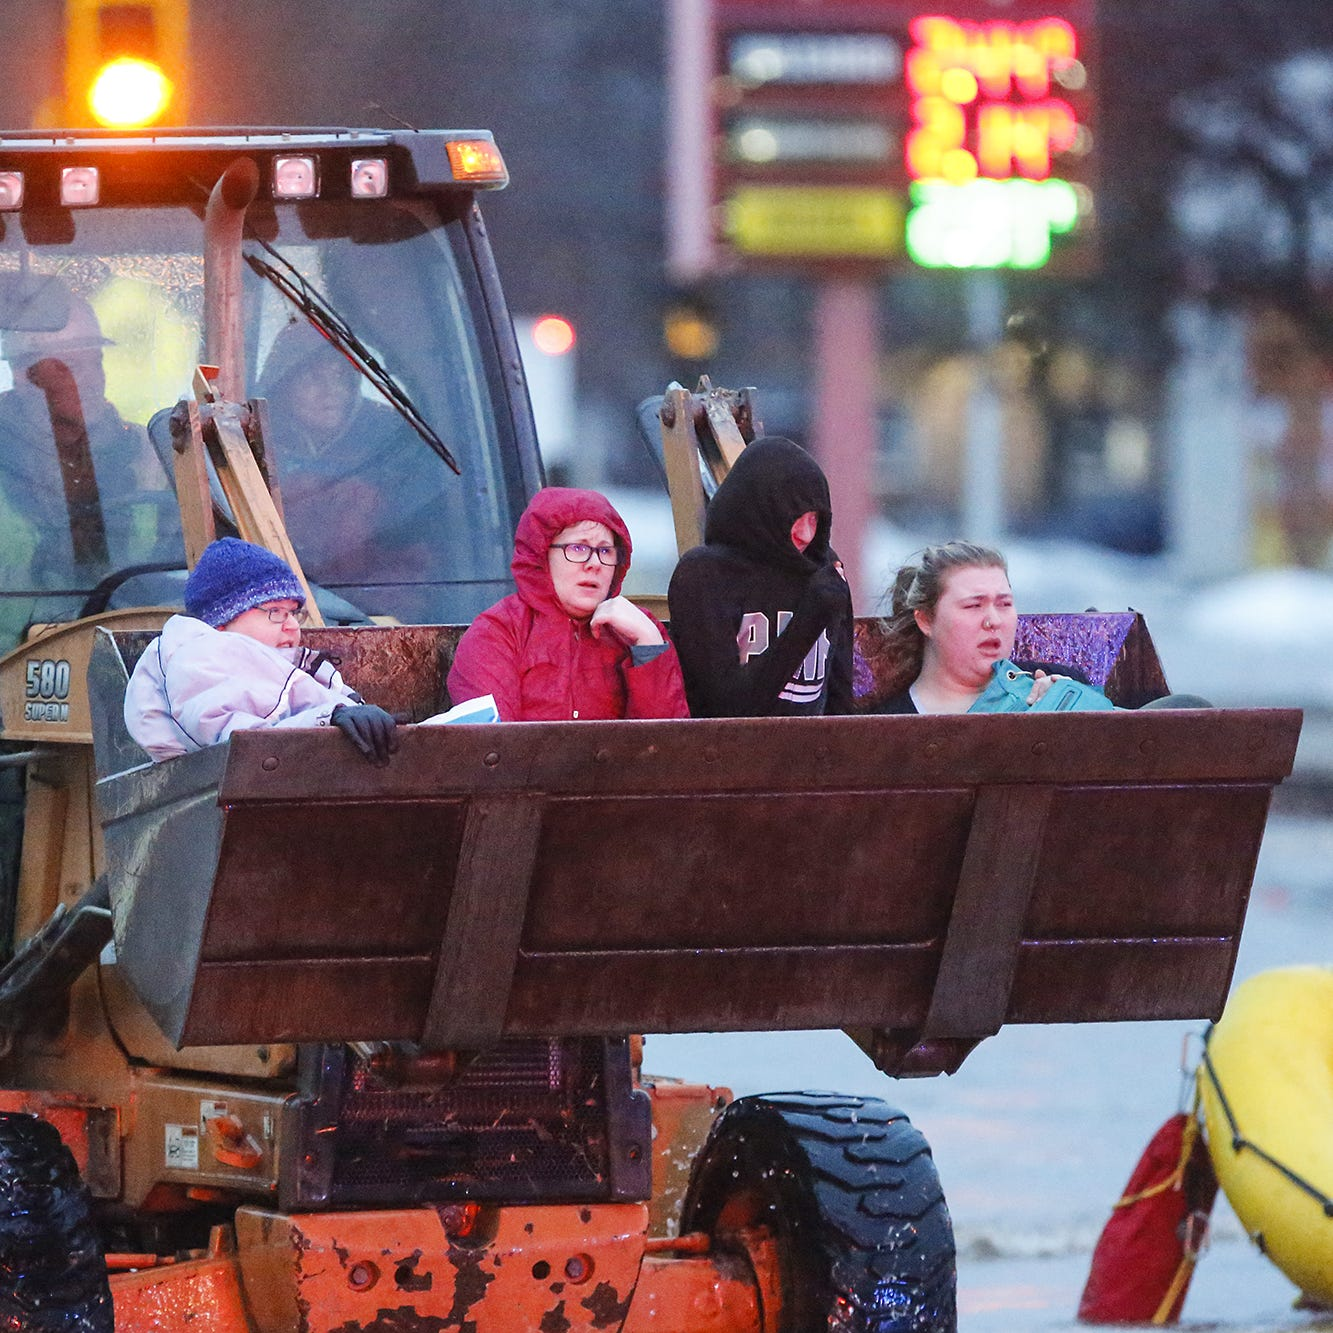 Wisconsin flooding: Here's what we know so far Friday